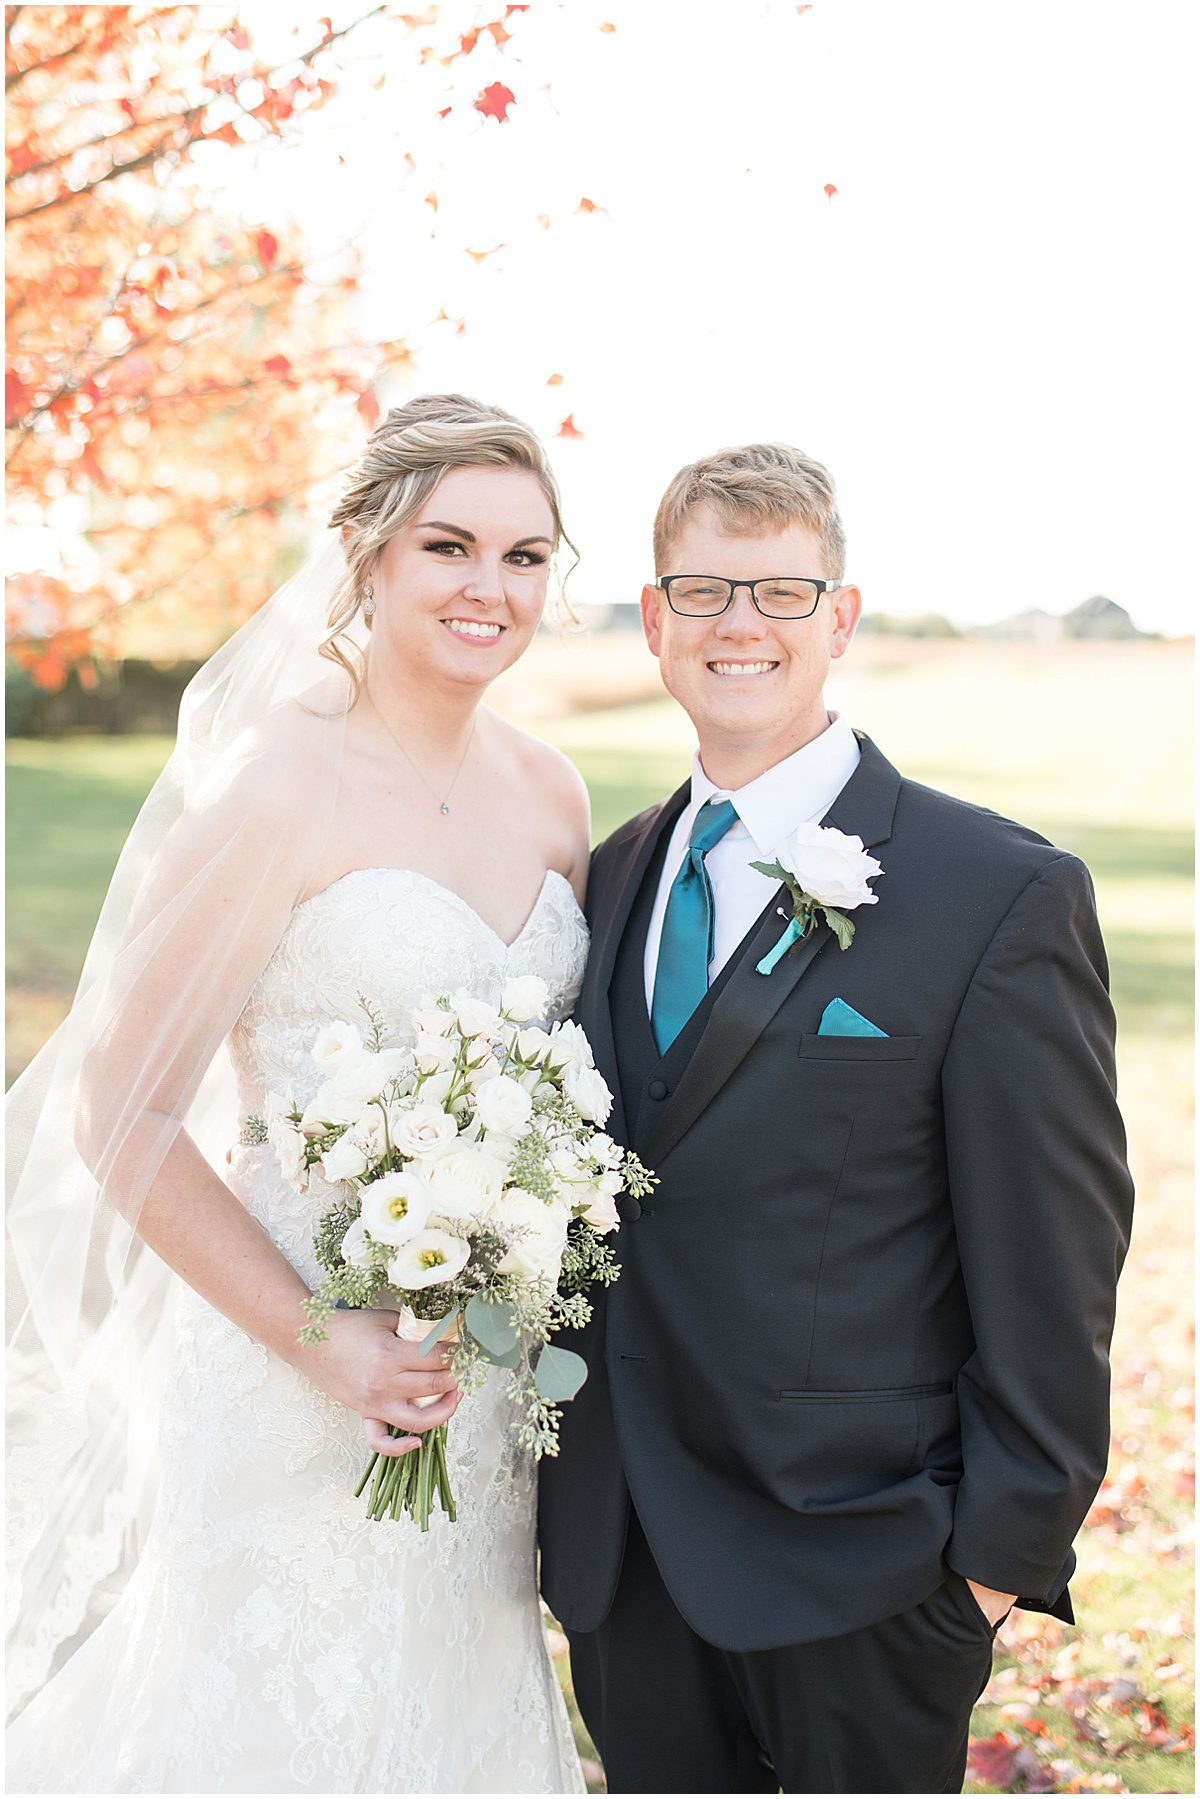 Just married photos after Cornerstone Christian Church wedding in Brownsburg, Indiana by Victoria Rayburn Photography